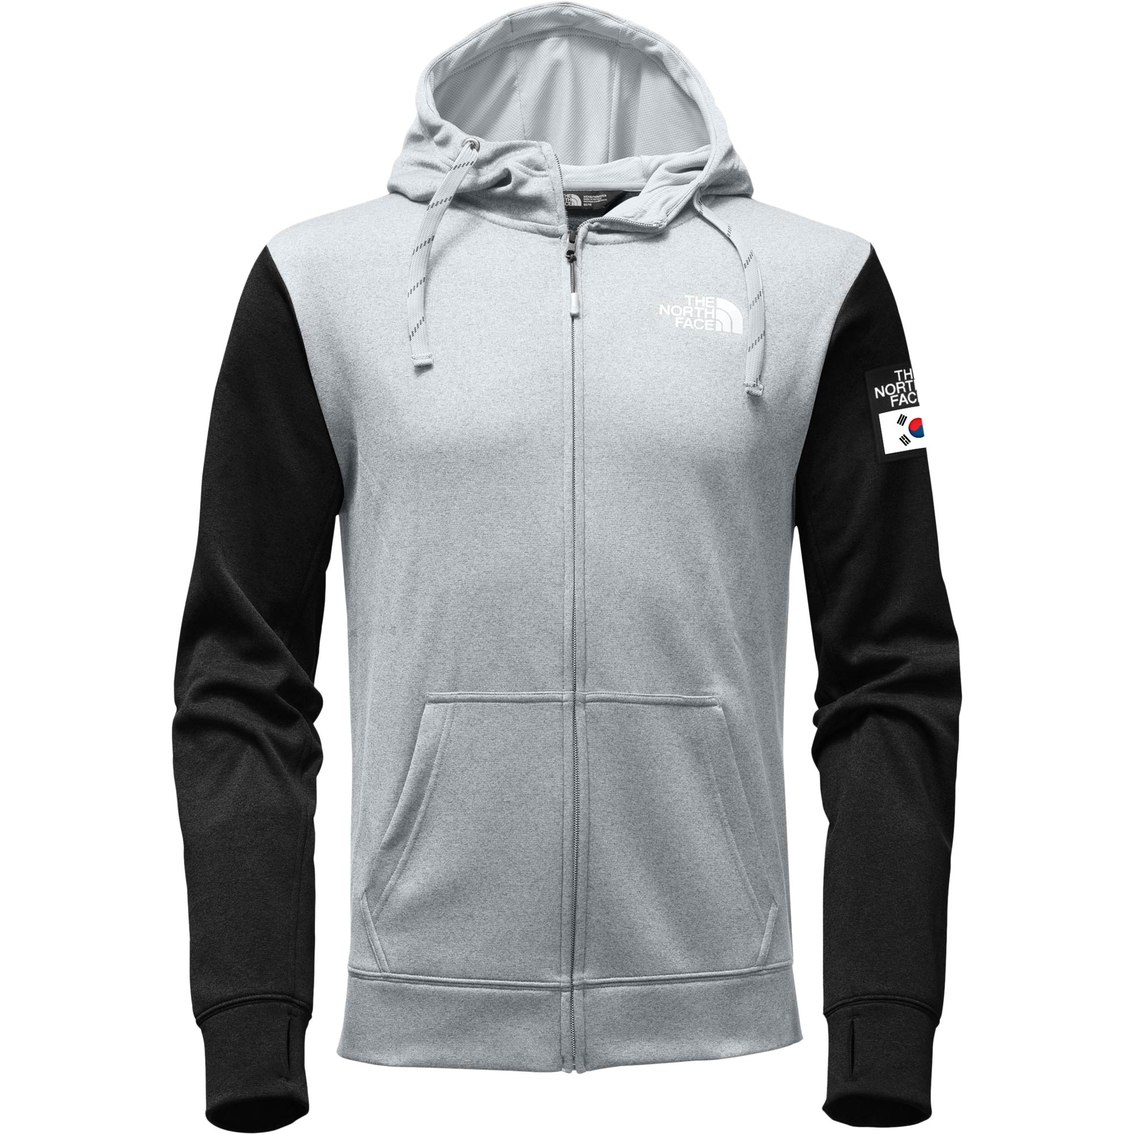 9e145db07 The North Face Surgent Lfc Full Zip Hoodie | Hoodies & Jackets ...